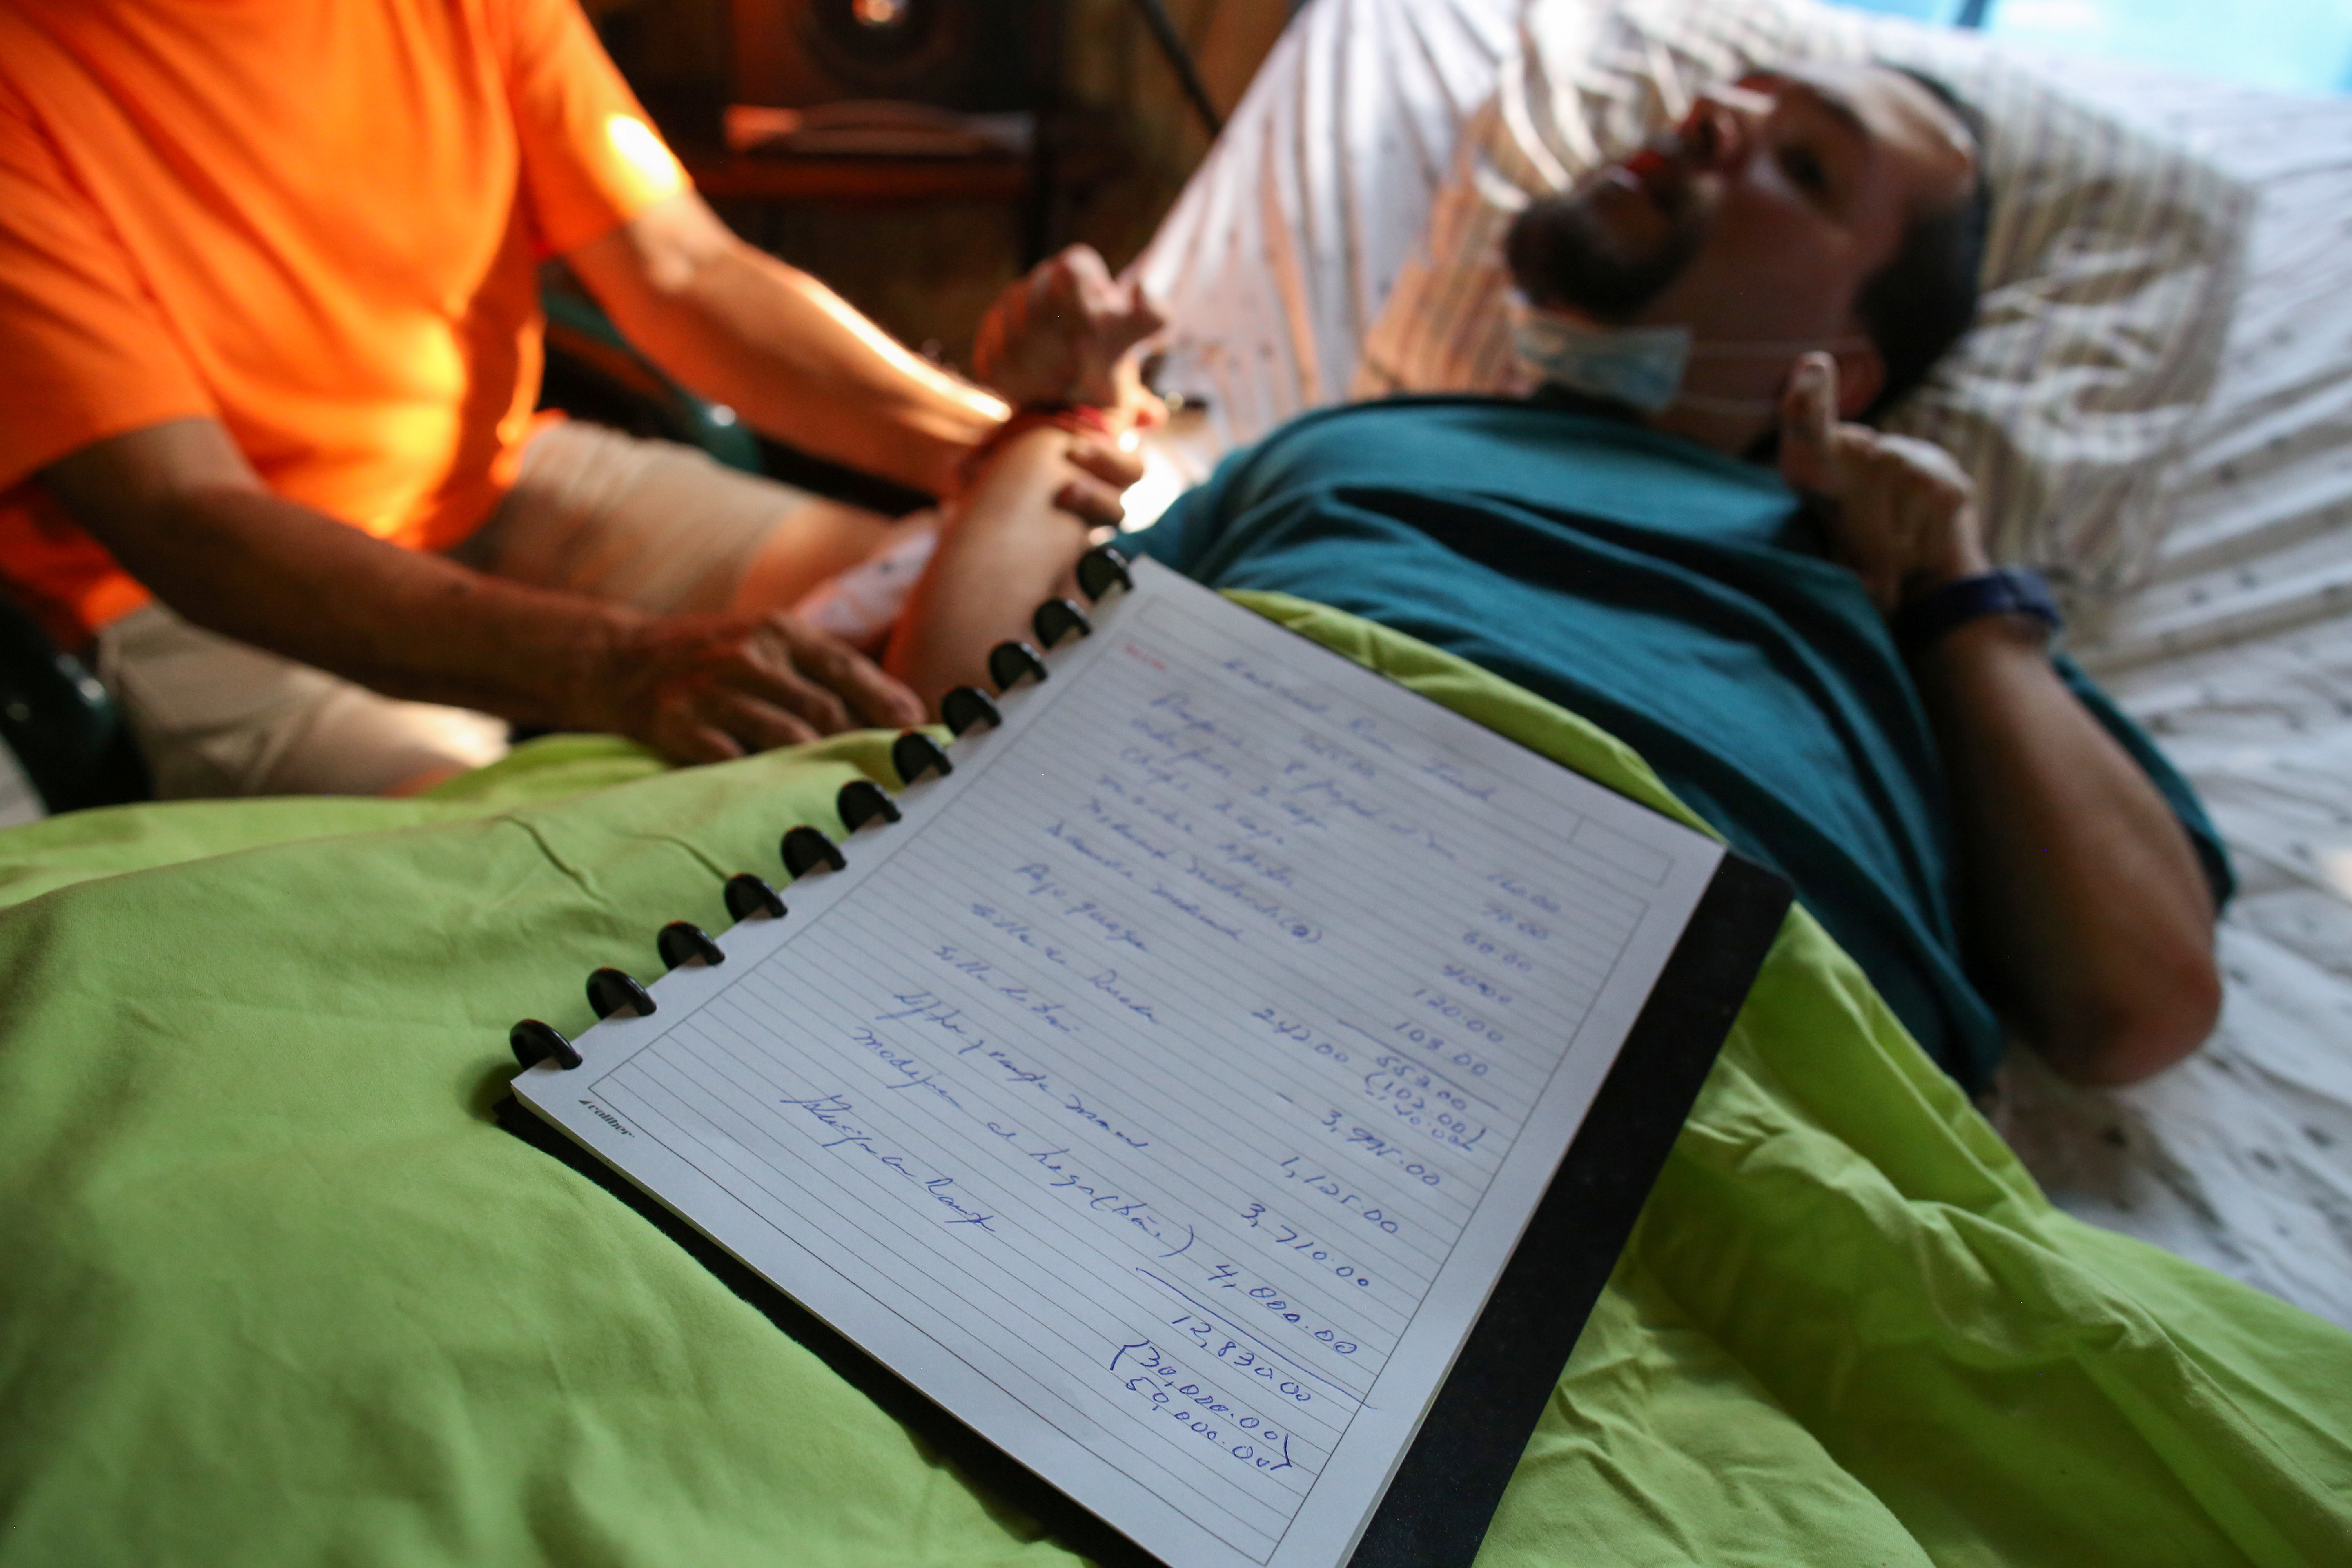 A handwritten list made by Abraham Rivera Berrios shows the details of the expenses involved in caring for his son Emanuel Rivera, who was born severely disabled and needs constant care, at his home, in Toa Alta, Puerto Rico, September 22, 2021. Picture taken September 22, 2021.  REUTERS/Alvin Baez